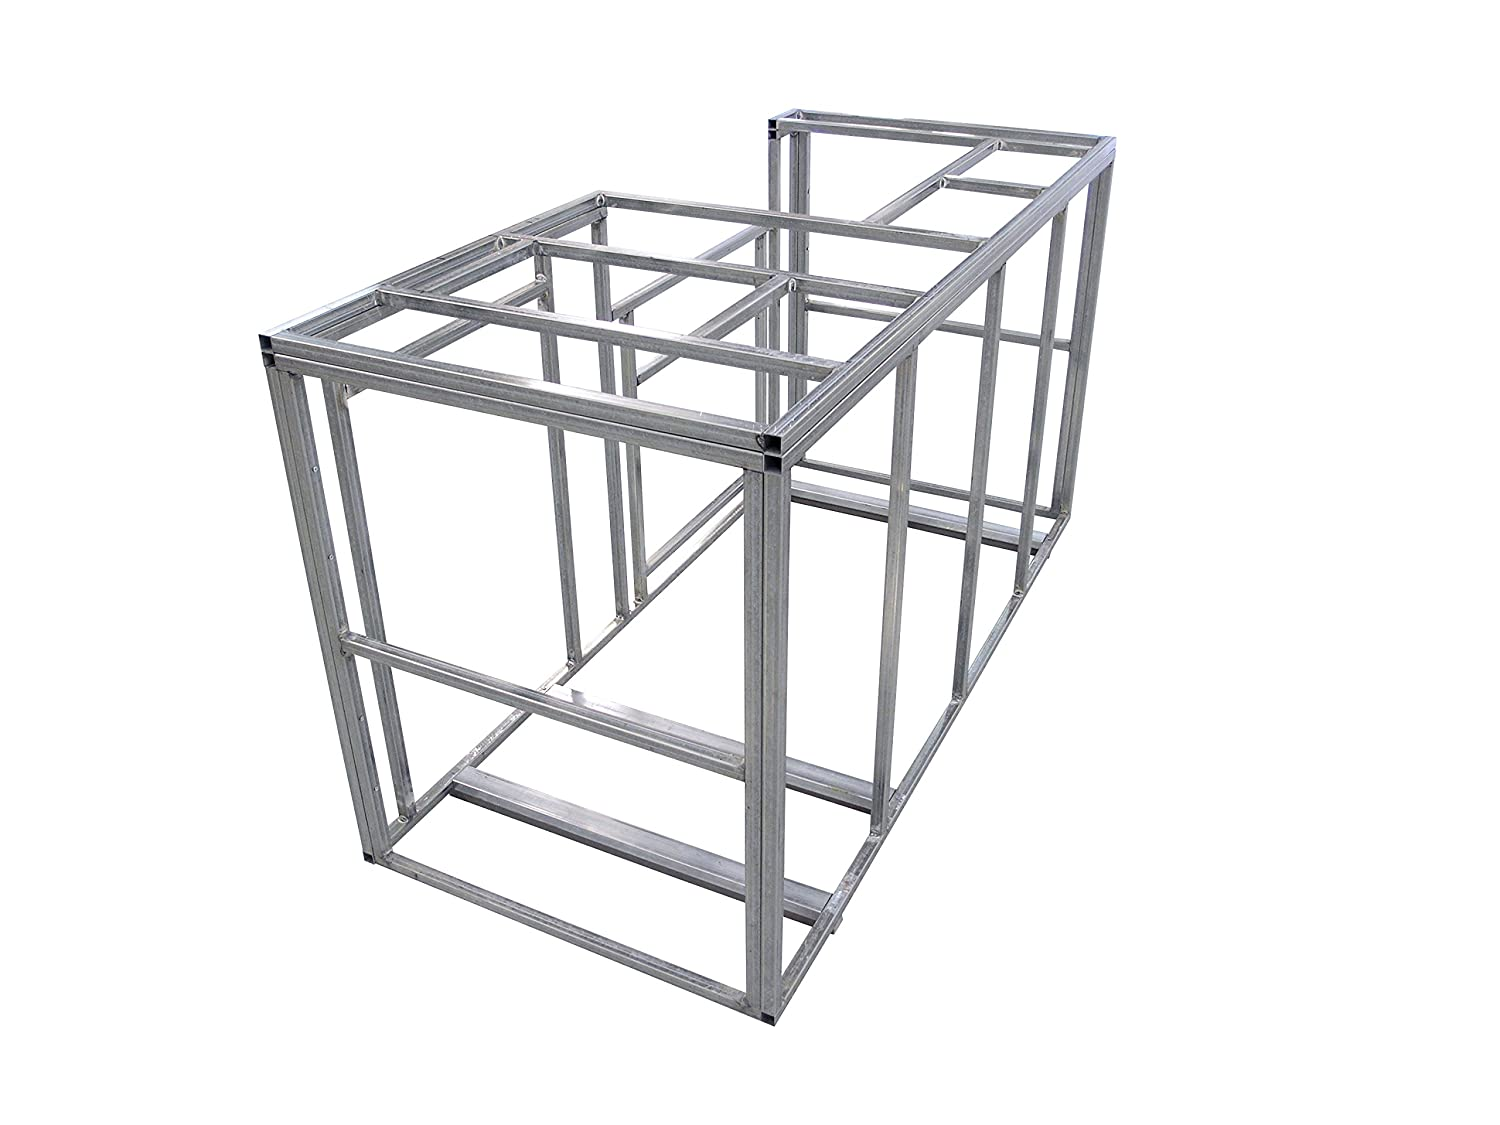 Amazon.com : Cal Flame 6\' Outdoor Kitchen Island Frame Kit : Garden ...